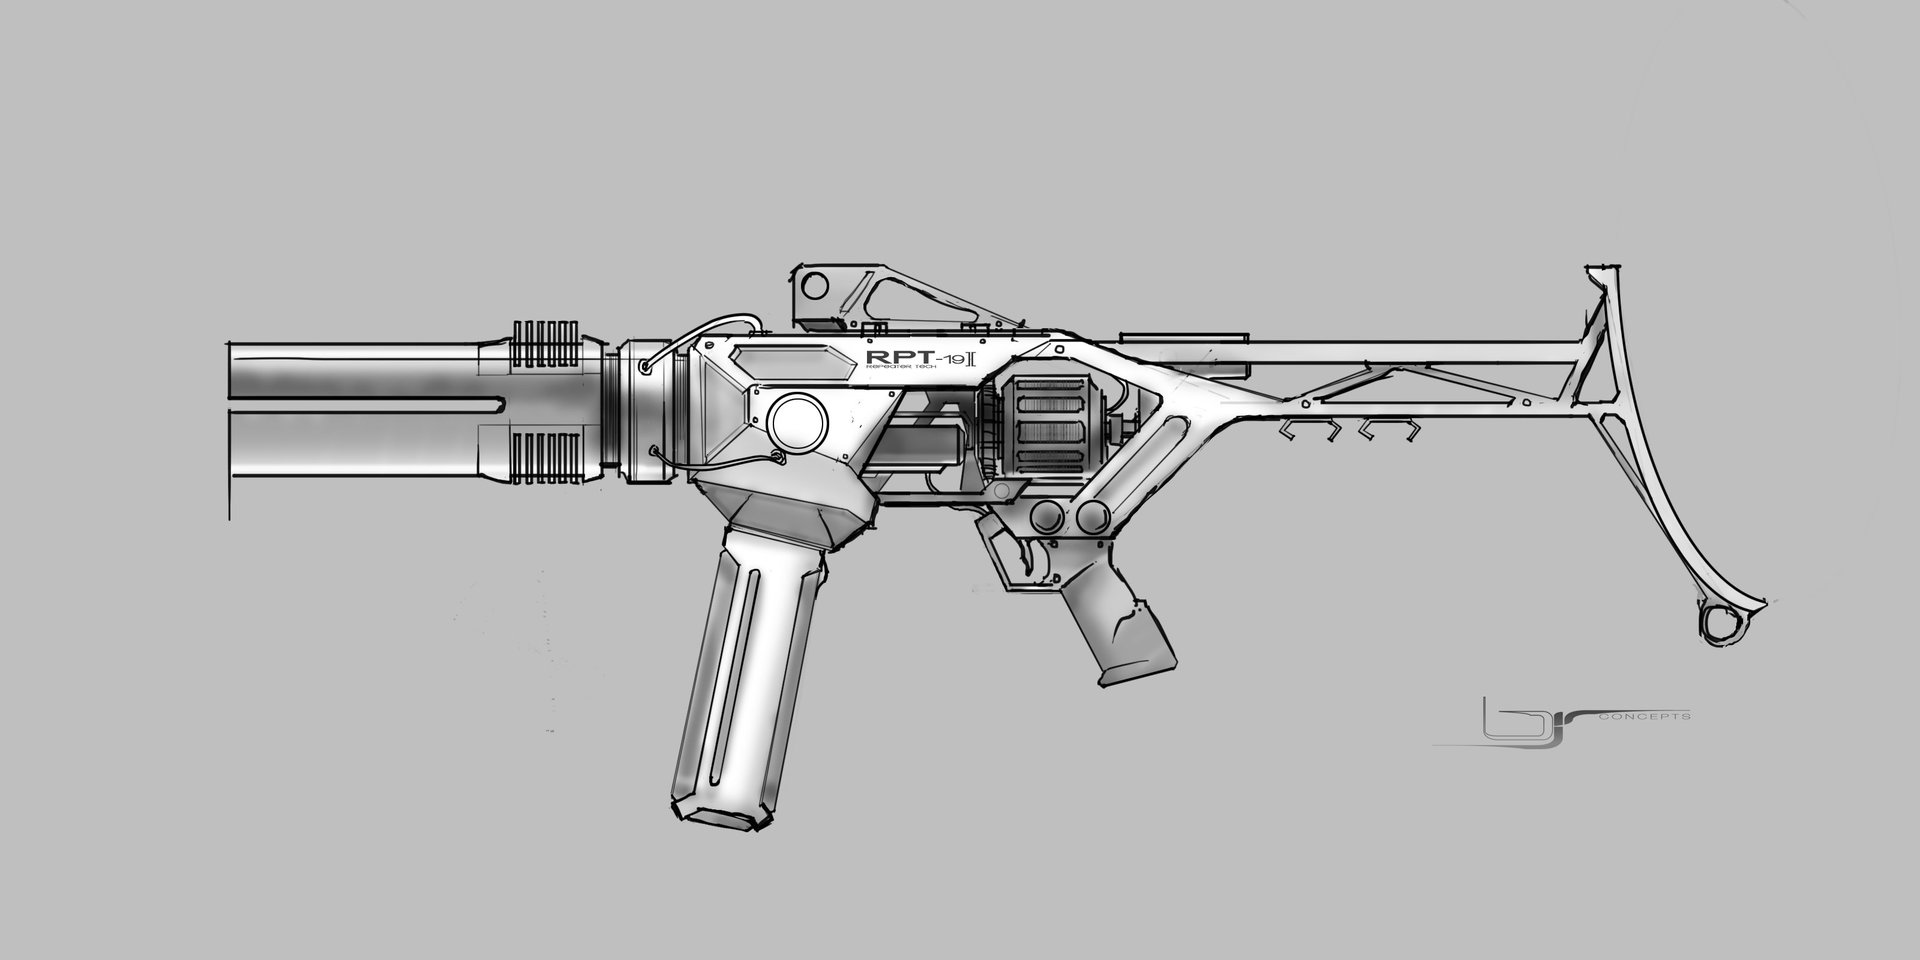 Brandon richard repeater gun 01 shaded